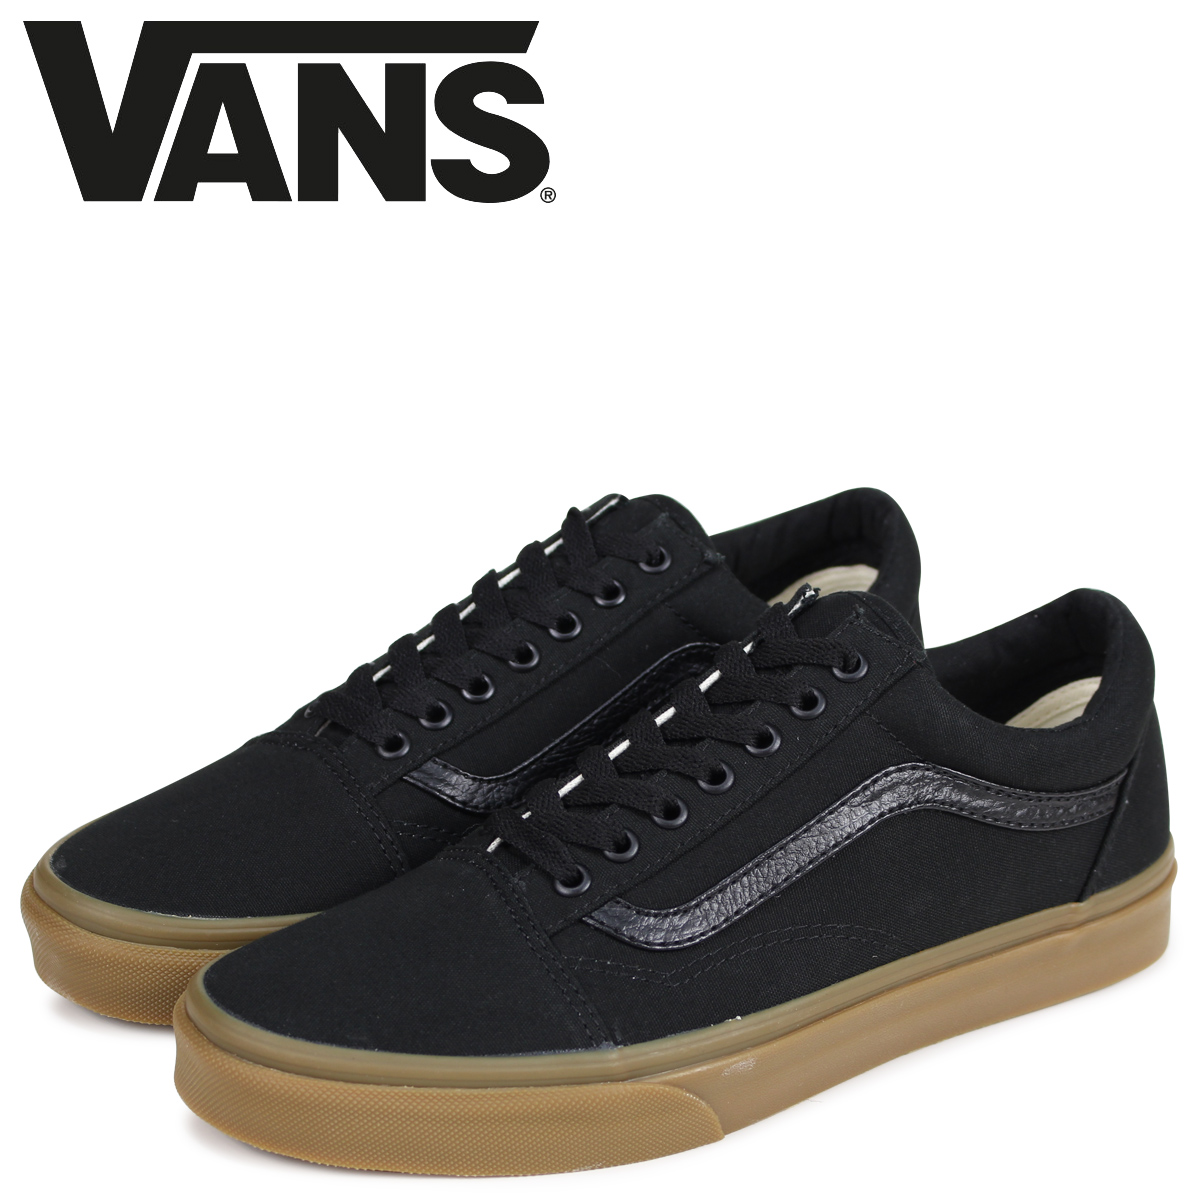 66e6b6bee6 Sugar Online Shop  Vans old school sneakers men VANS station wagons ...